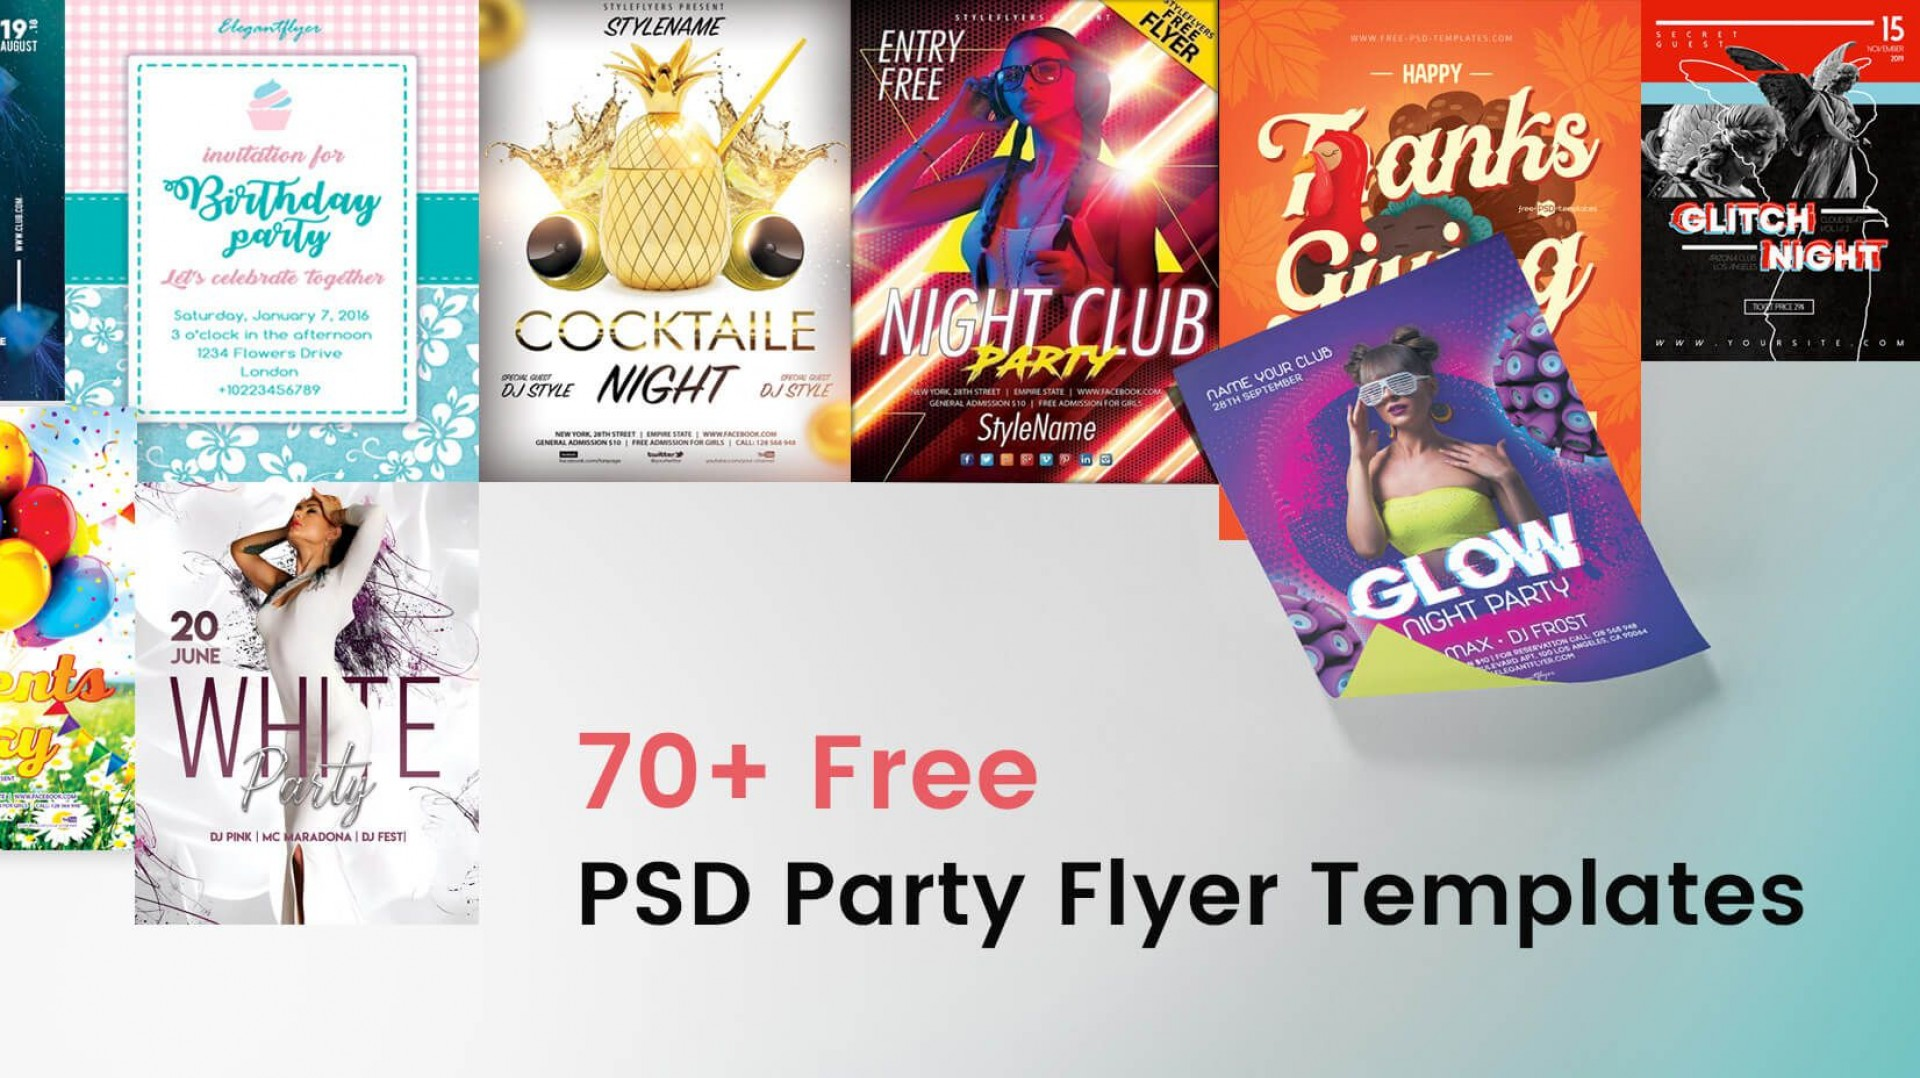 006 Wonderful Free Psd Poster Template Highest Clarity  Templates Restaurant Photoshop Download1920